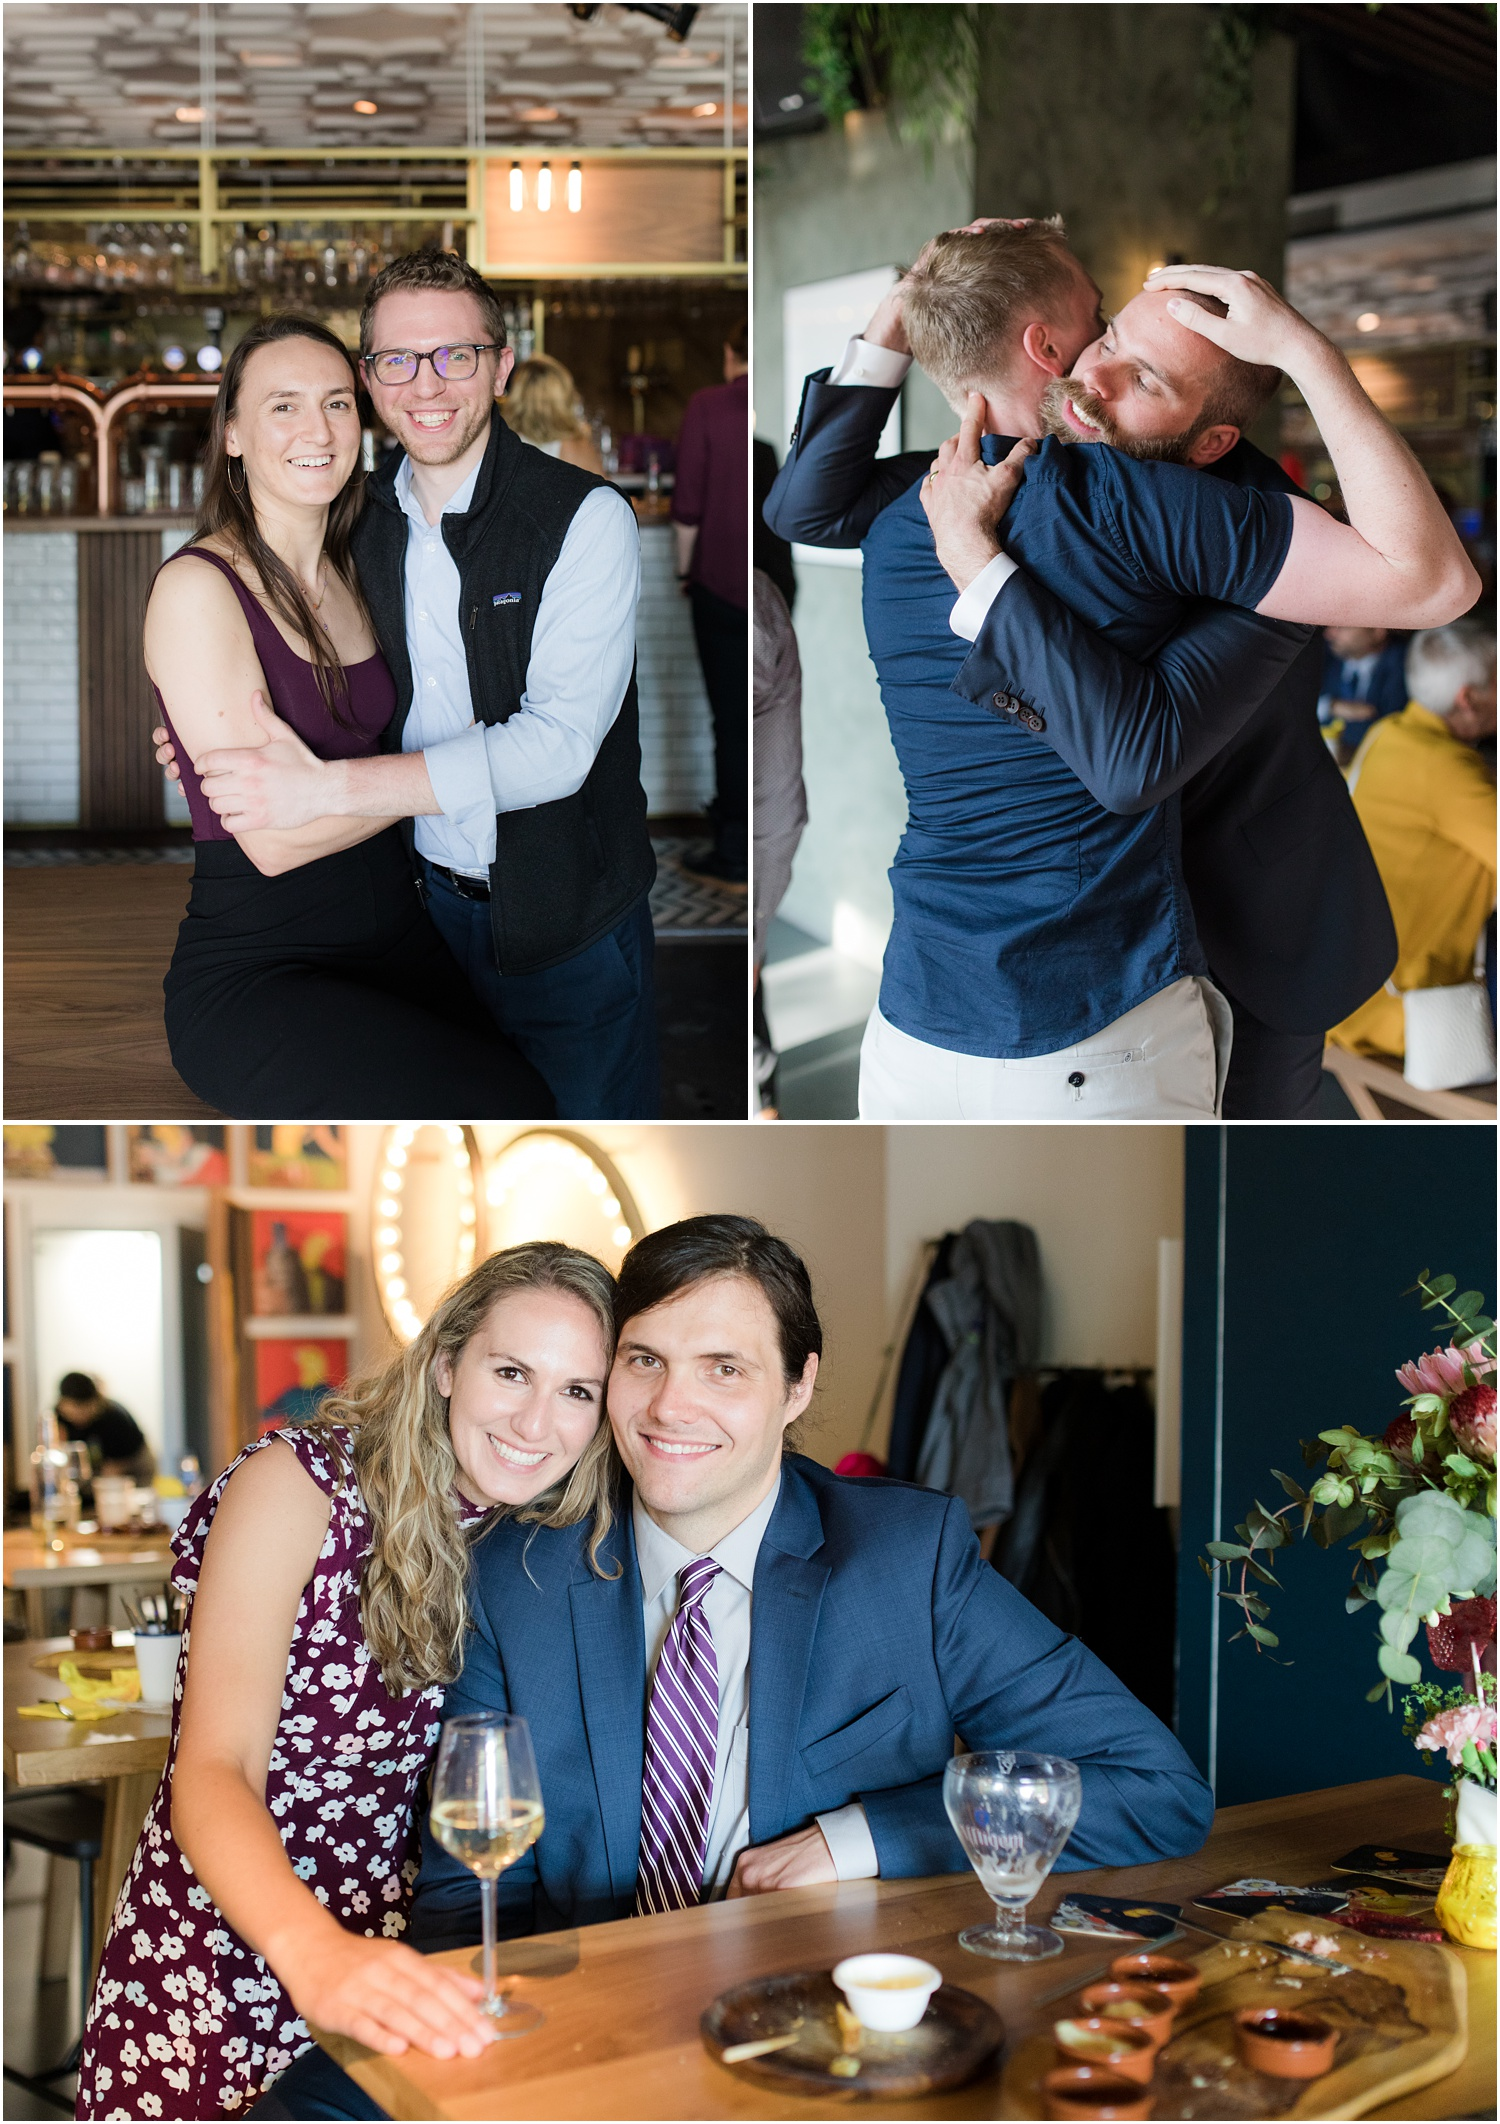 fun wedding reception photos at De Gele Kenarie in Rotterdam.